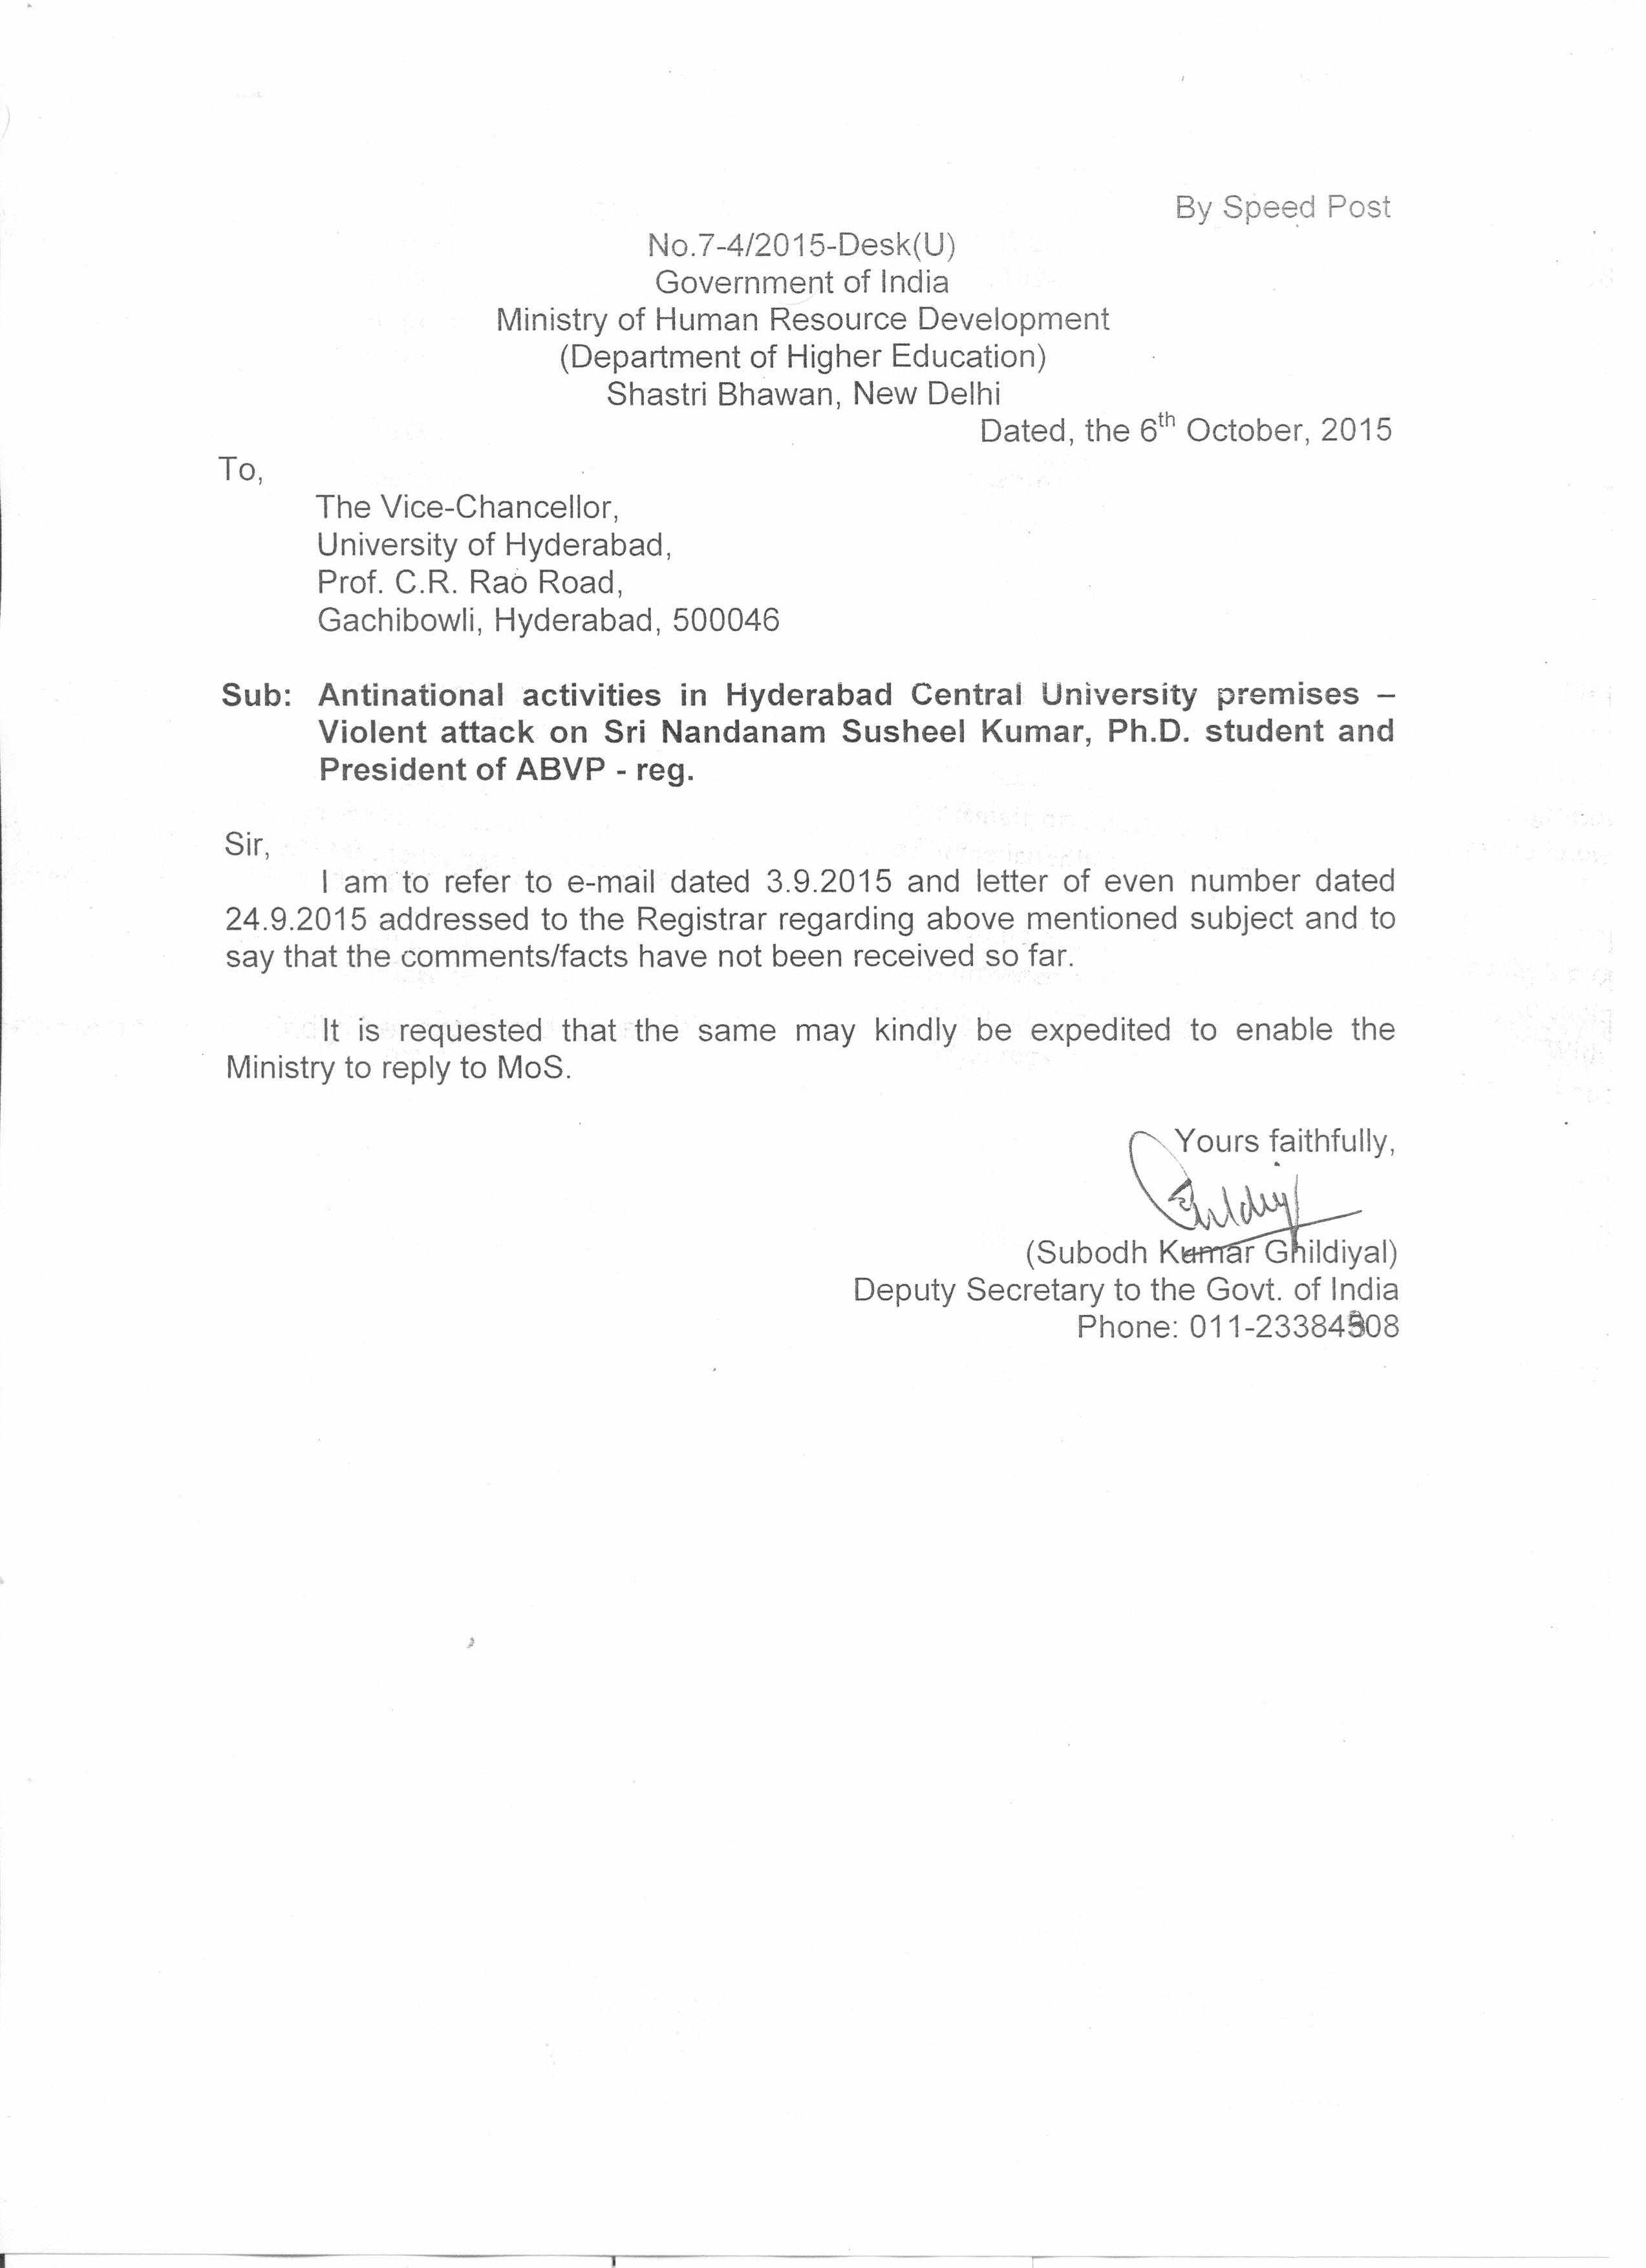 Letter Trail Shows HRD Ministrys Keen Interest In Anti